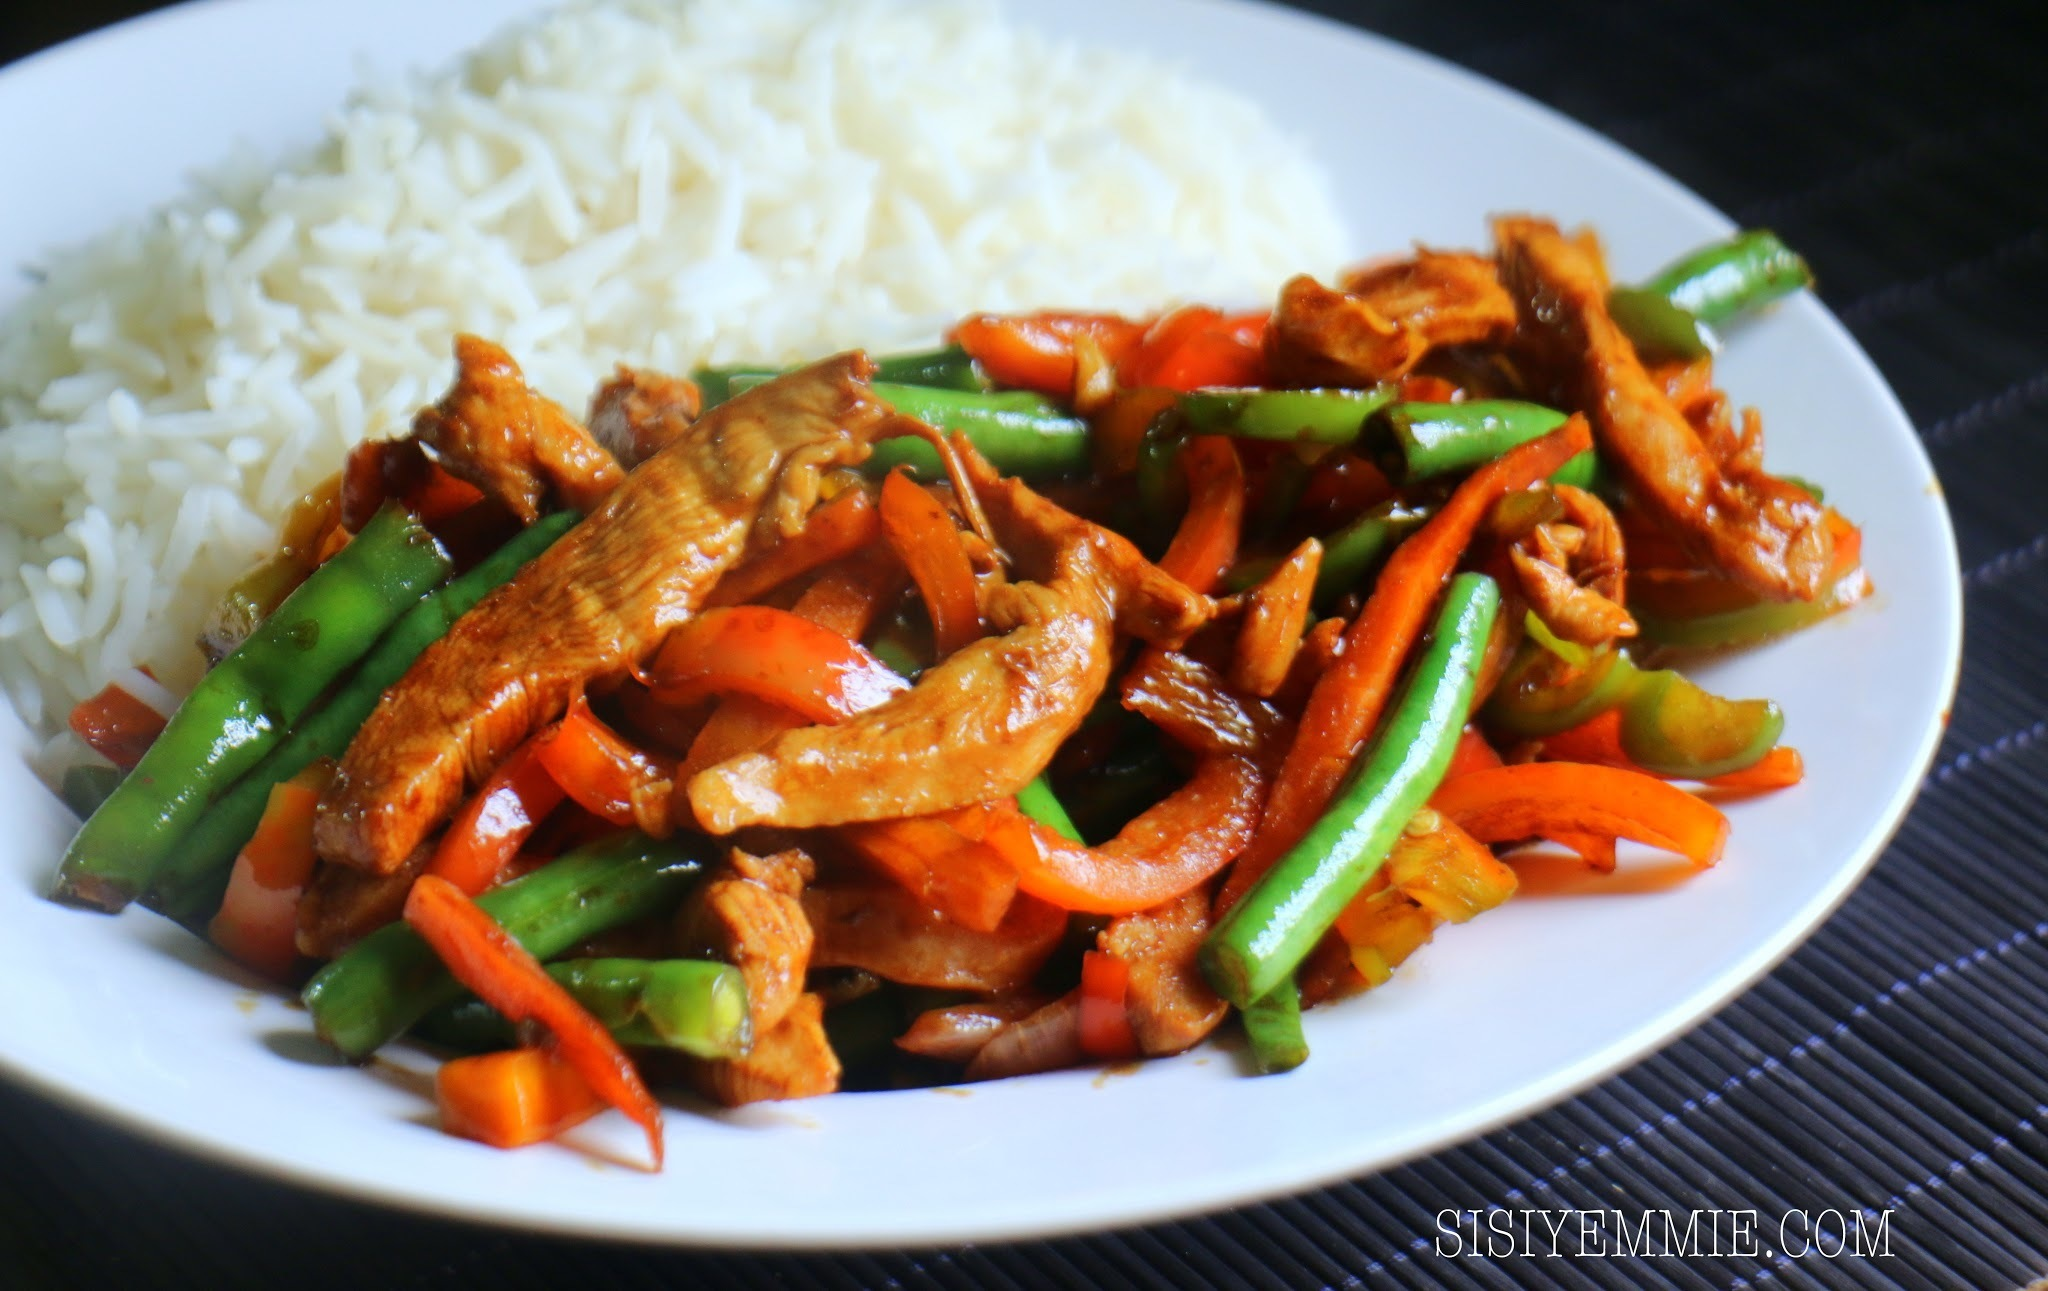 THIS CHICKEN & VEGGIE STIR-FRY IS PERFECT WITH RICE!